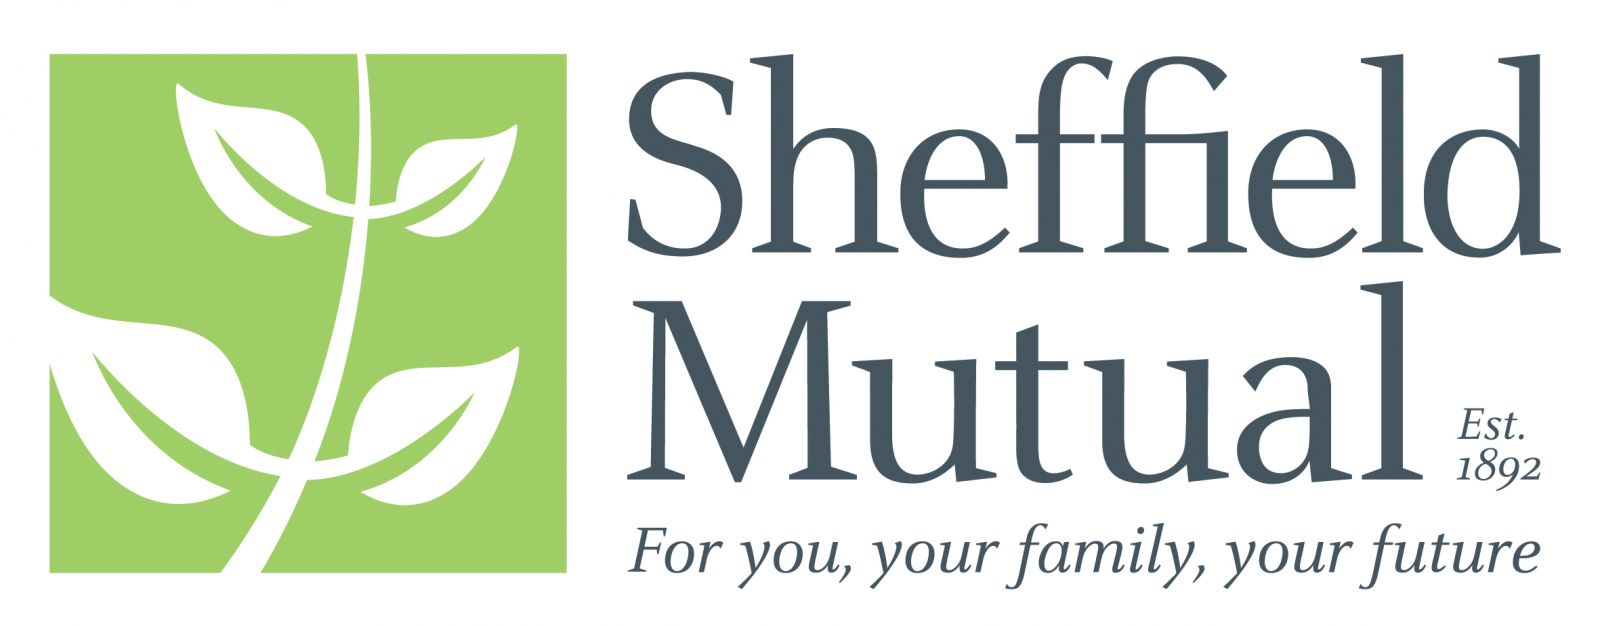 Sheffield Mutual